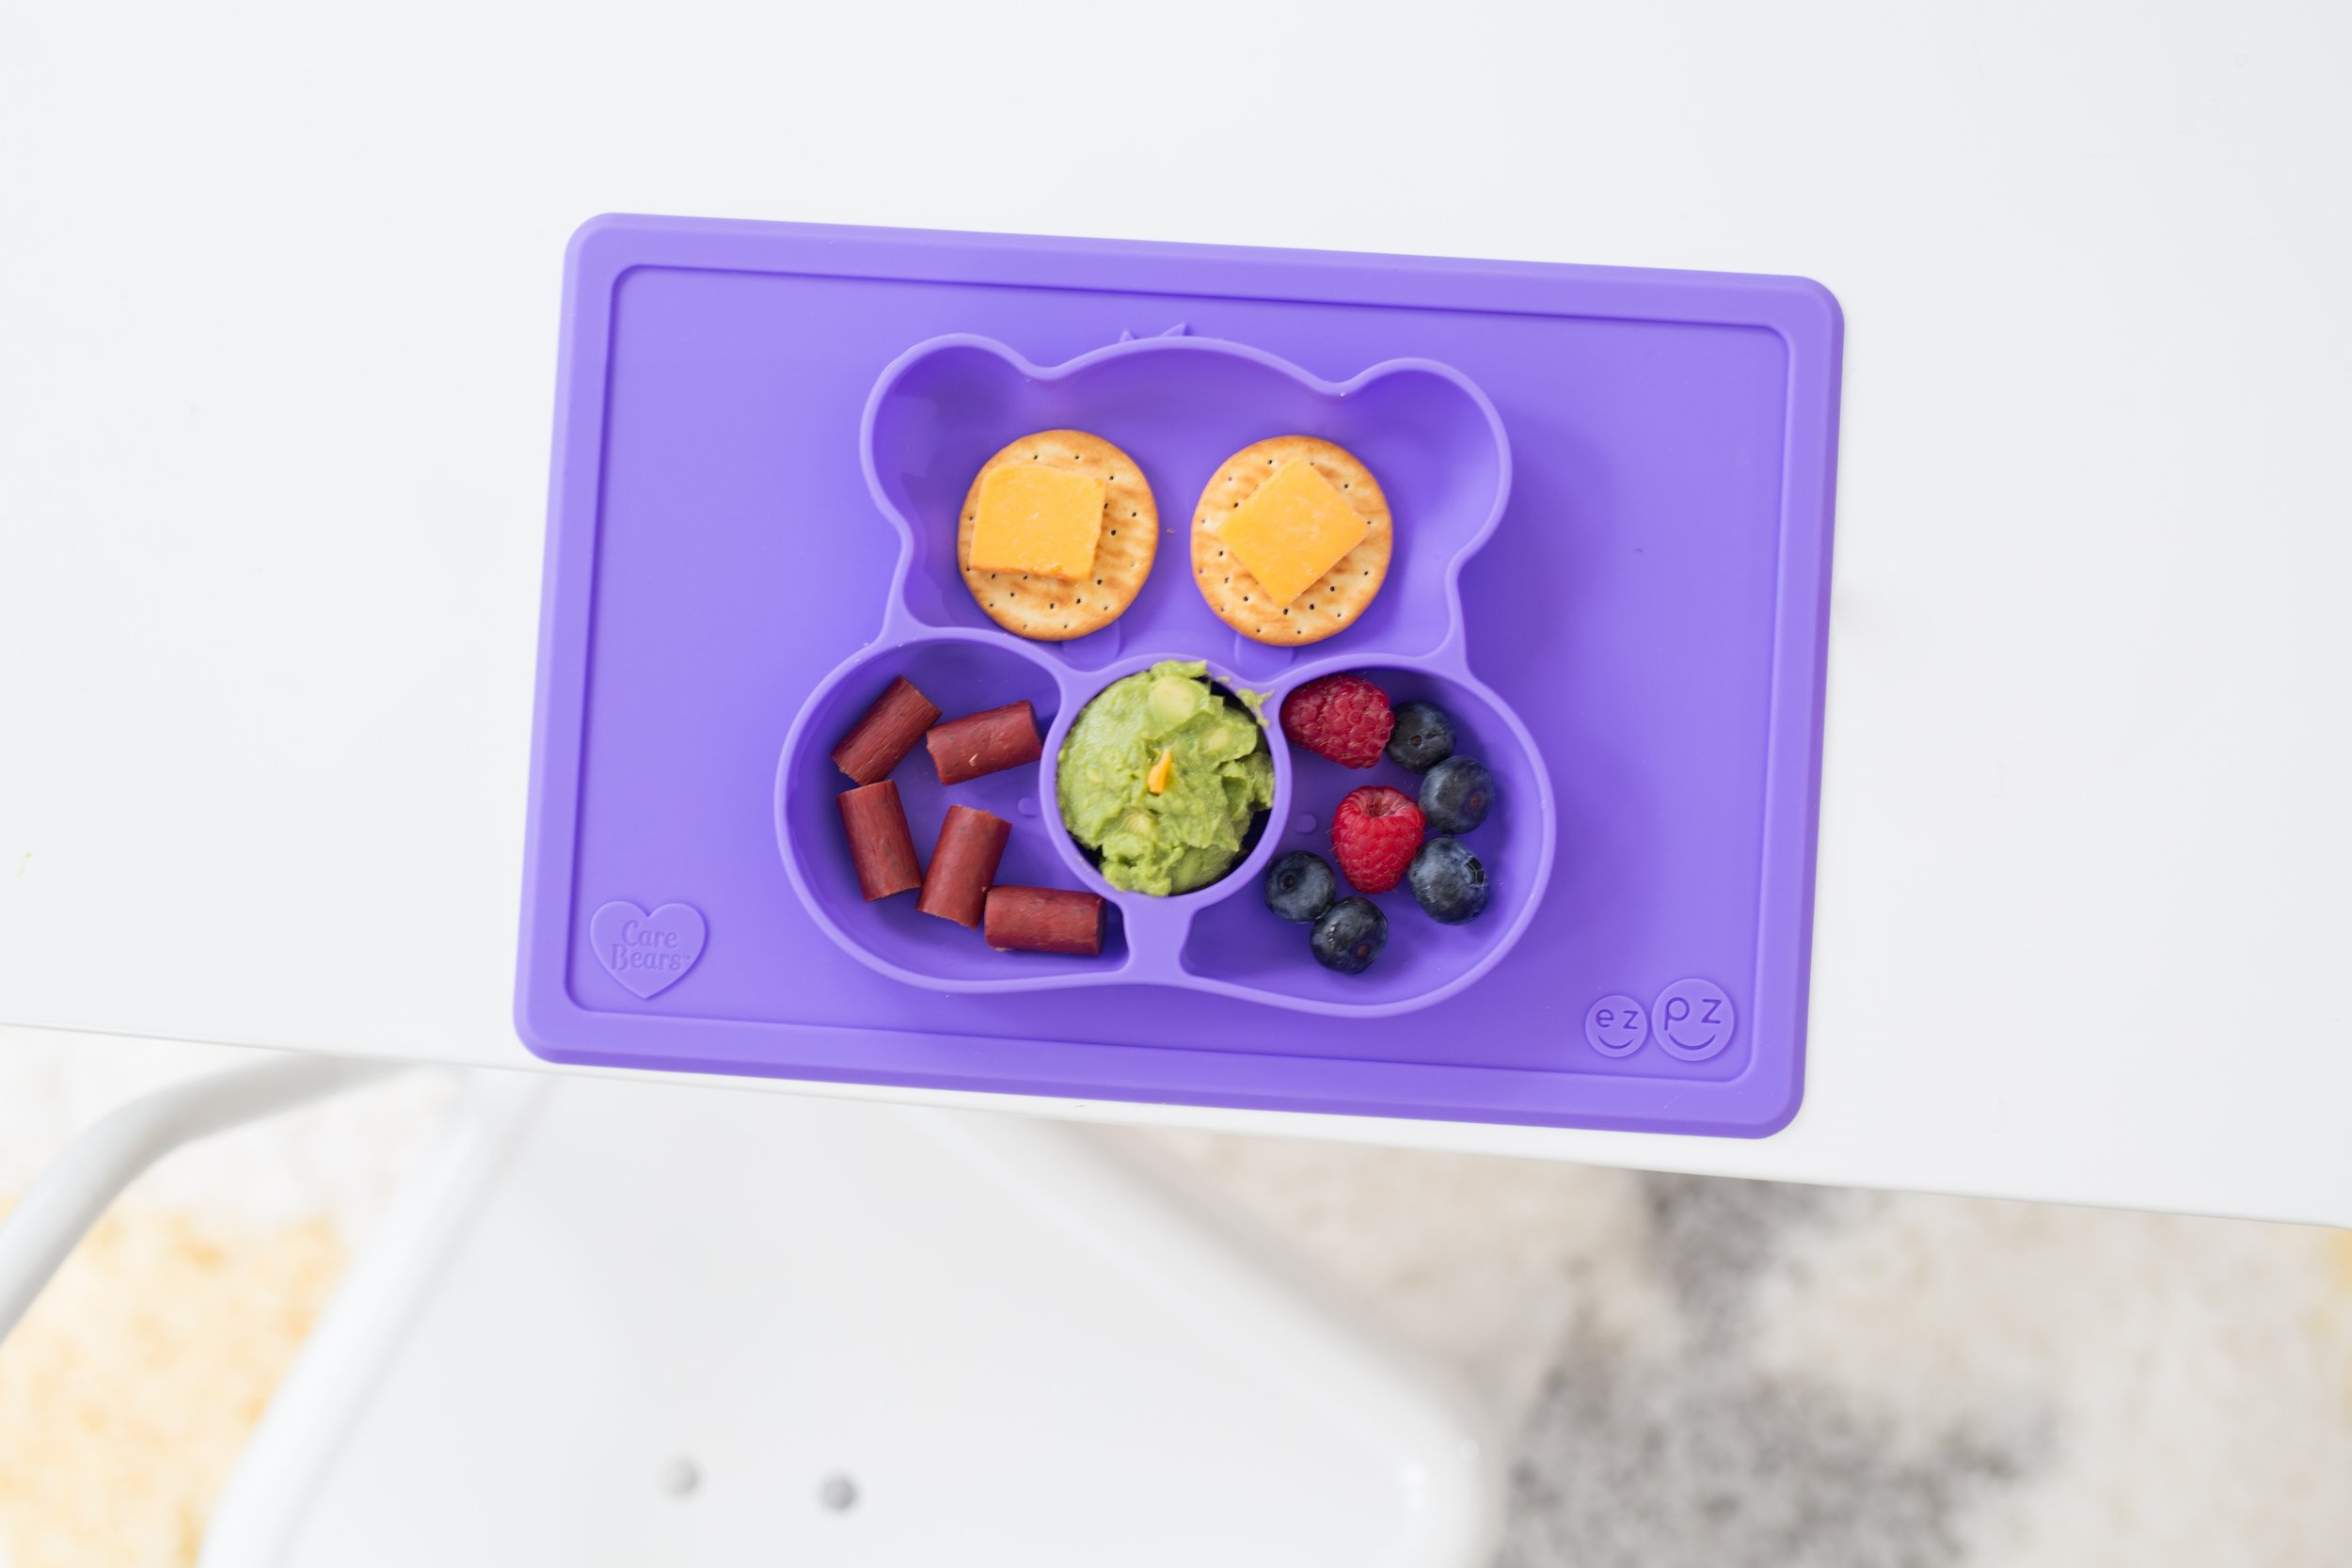 EZPZ -  EZPZ was created to help make meal time fun and enjoyable for you and your minis!  They offer mats, bowls, and even activity mats.  All are made from food grade silicone, so no threat of plastics contamination!